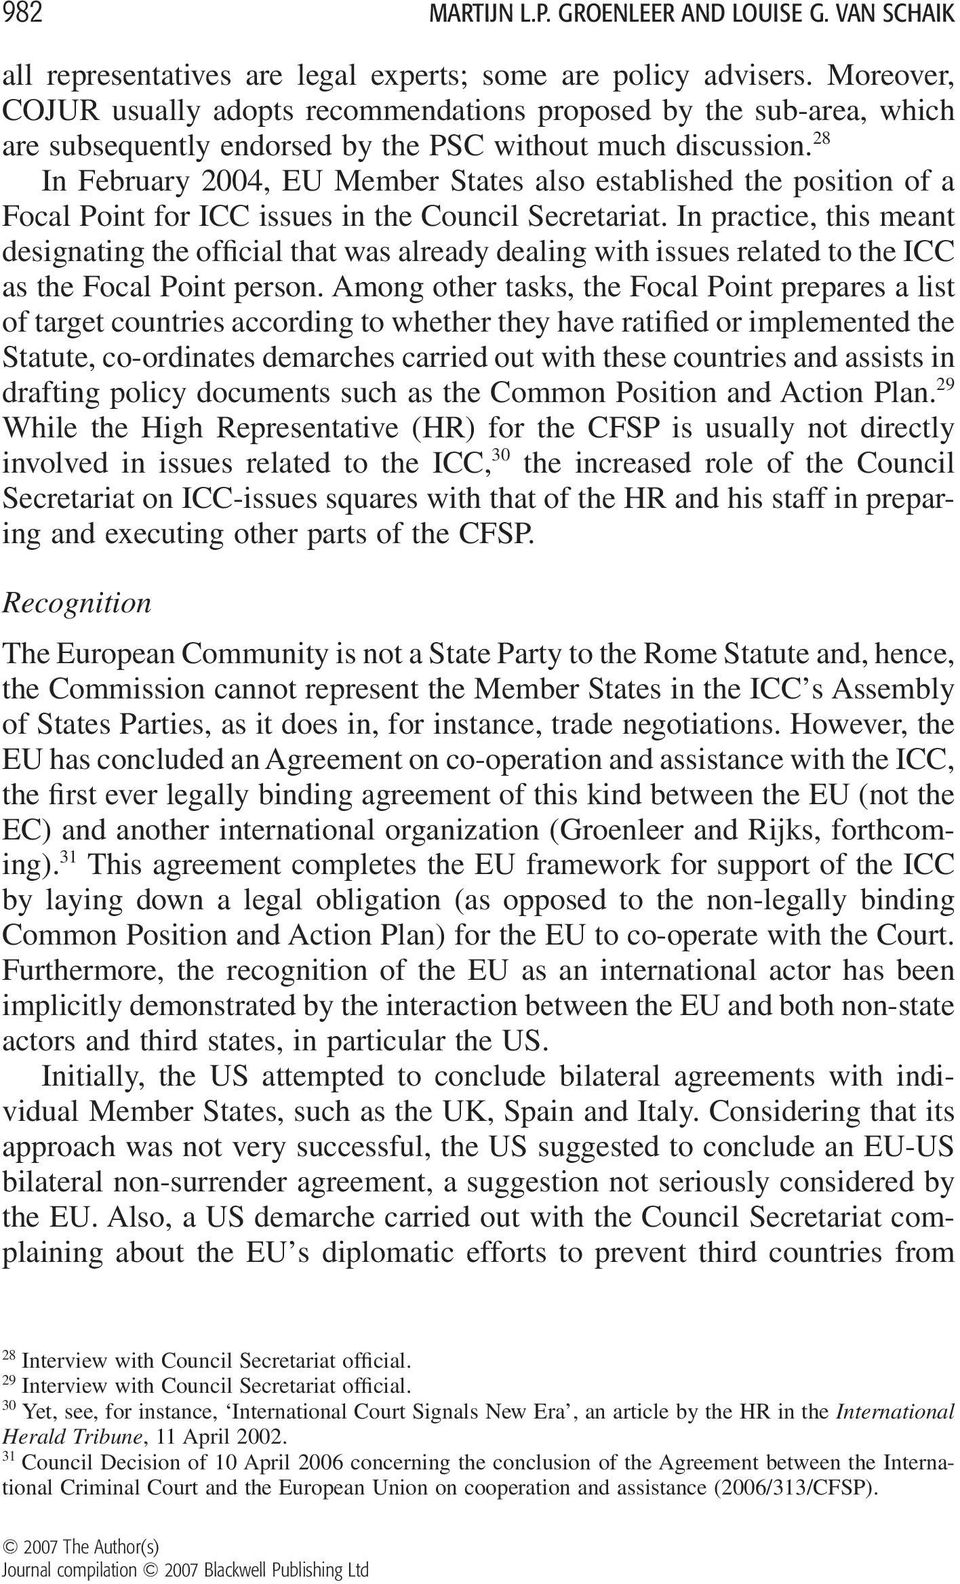 28 In February 2004, EU Member States also established the position of a Focal Point for ICC issues in the Council Secretariat.